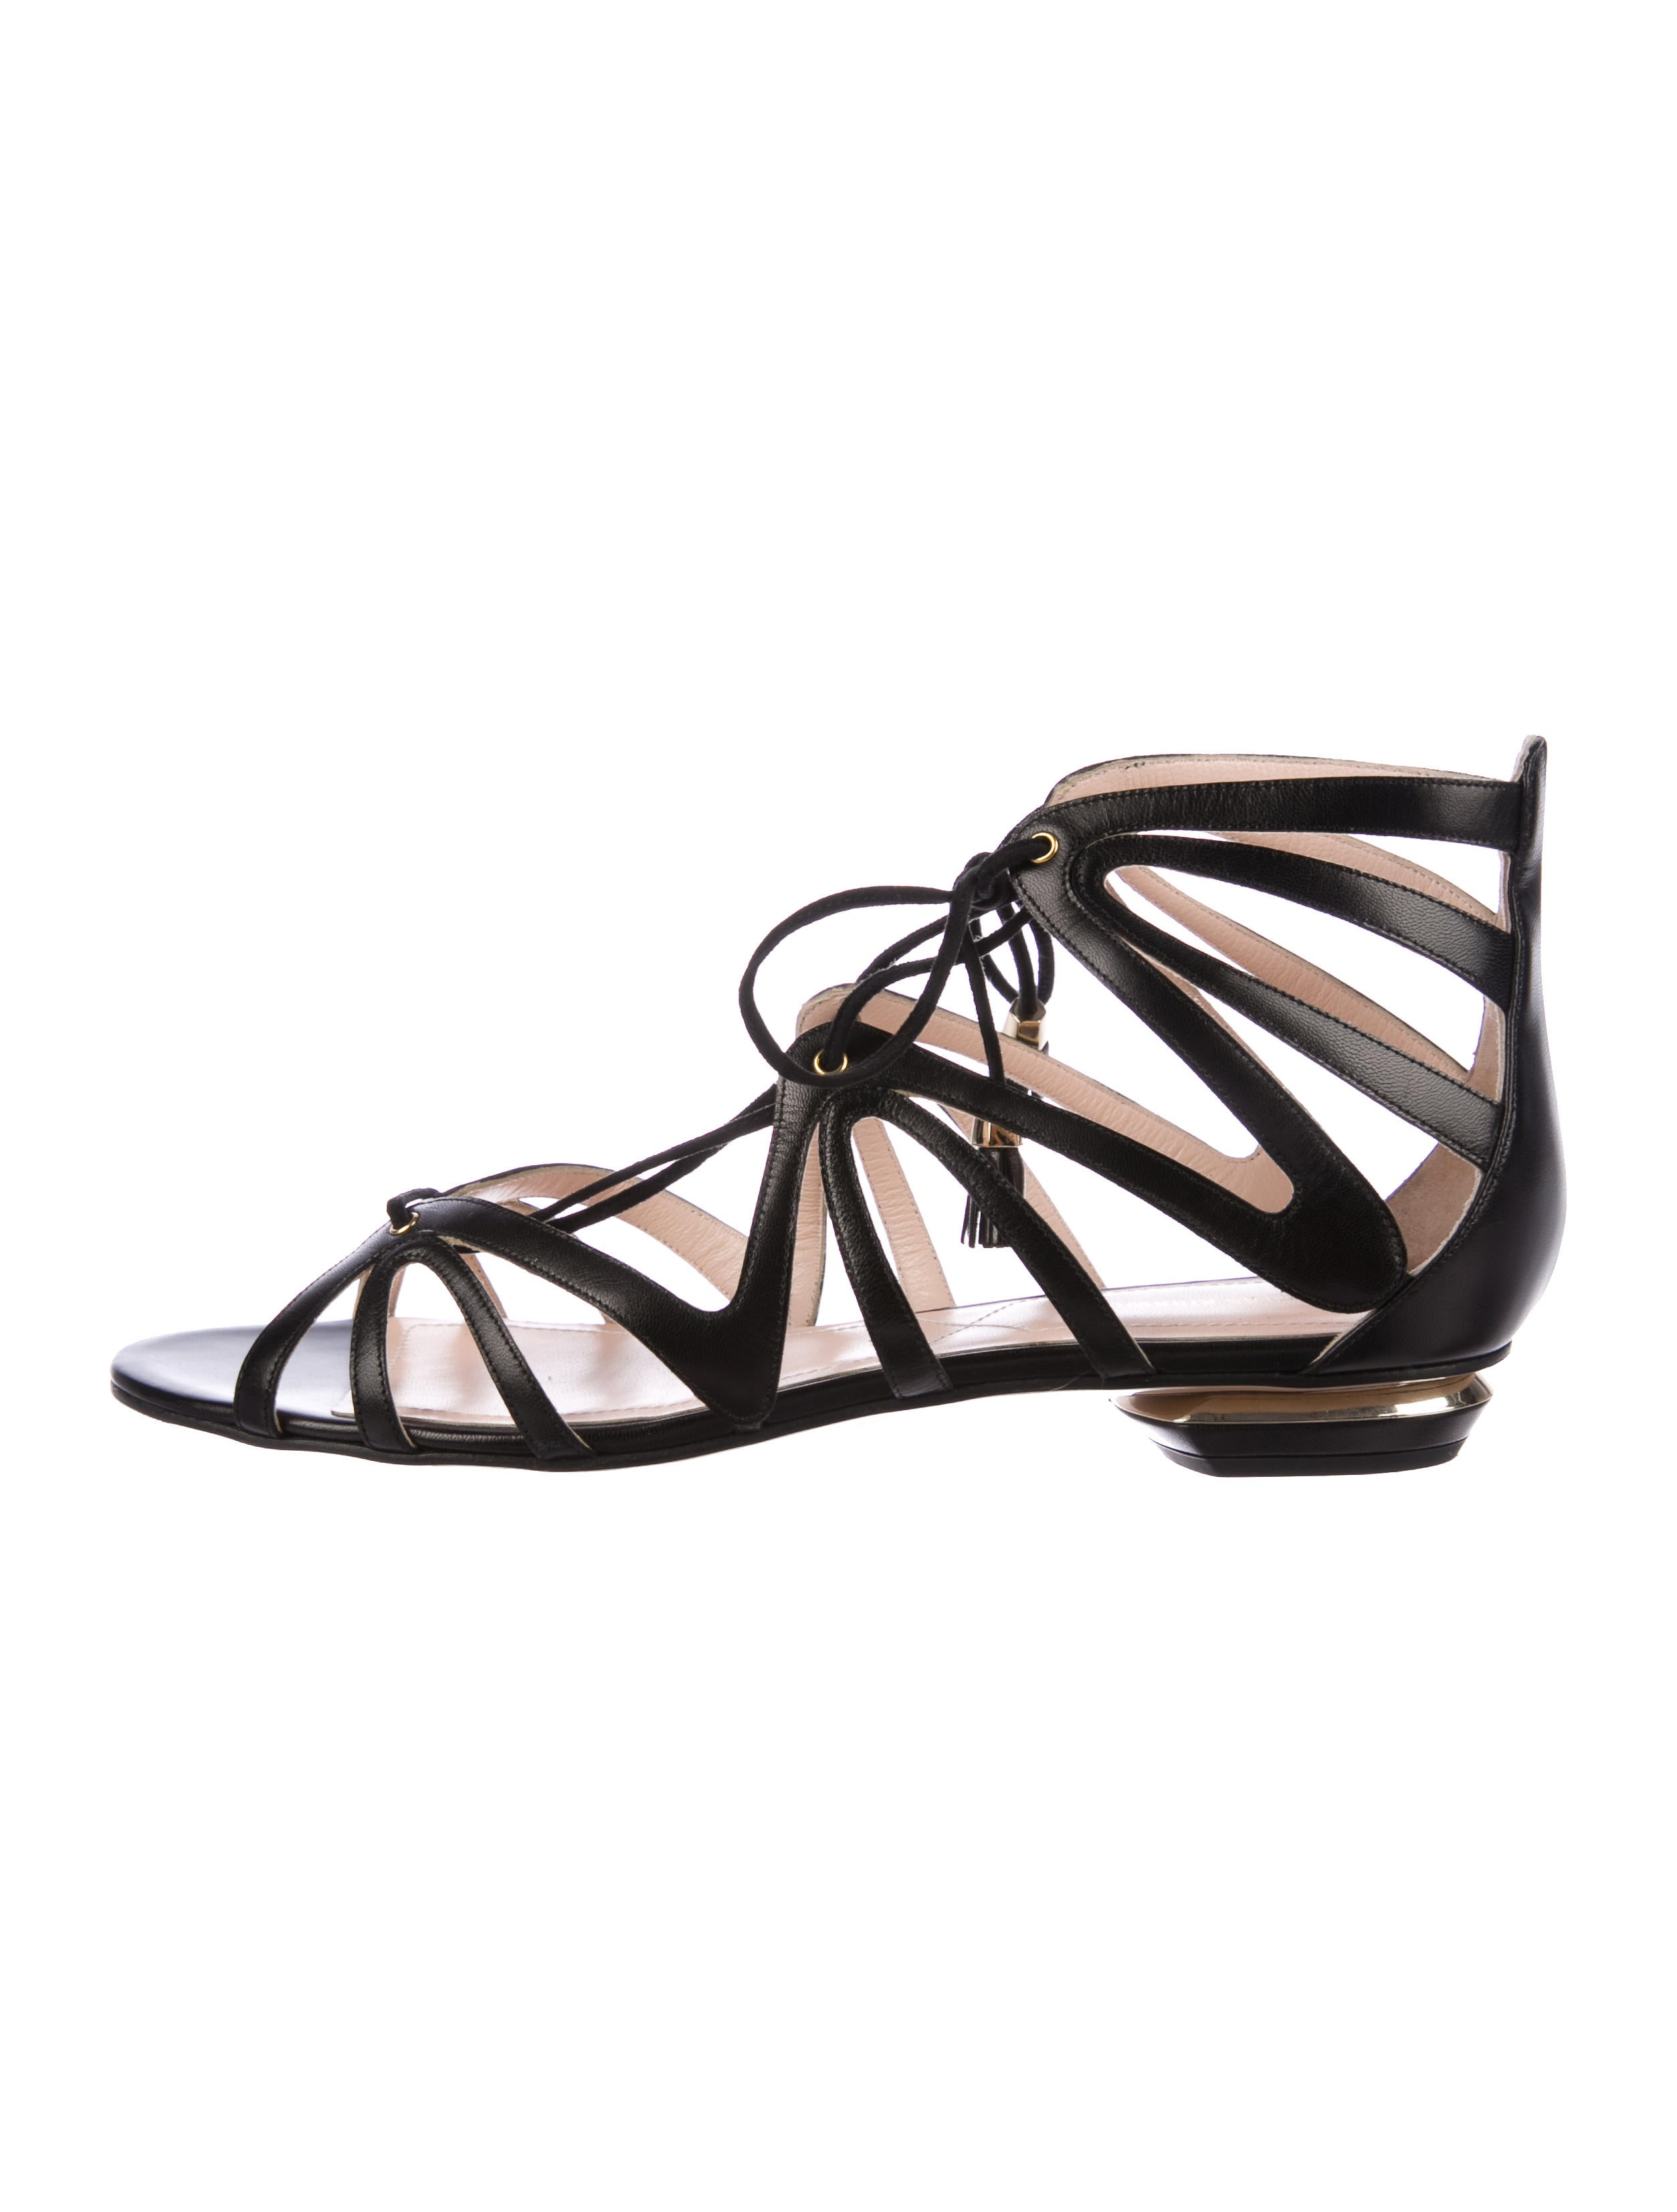 Nicholas Kirkwood Leather Cage Sandals w/ Tags eastbay finishline online amazon cheap price buy cheap new jWPoE2bUH